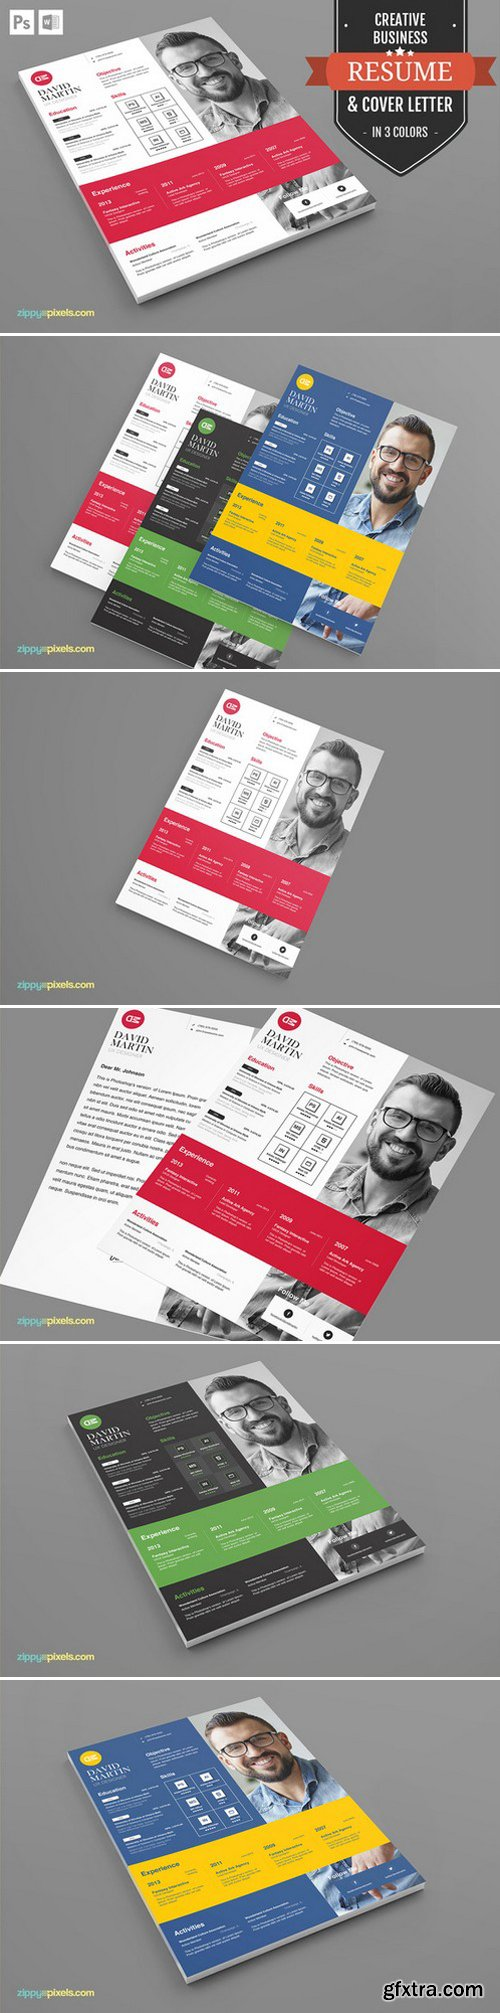 CM - Resume Template in MS Word And PSD 394522